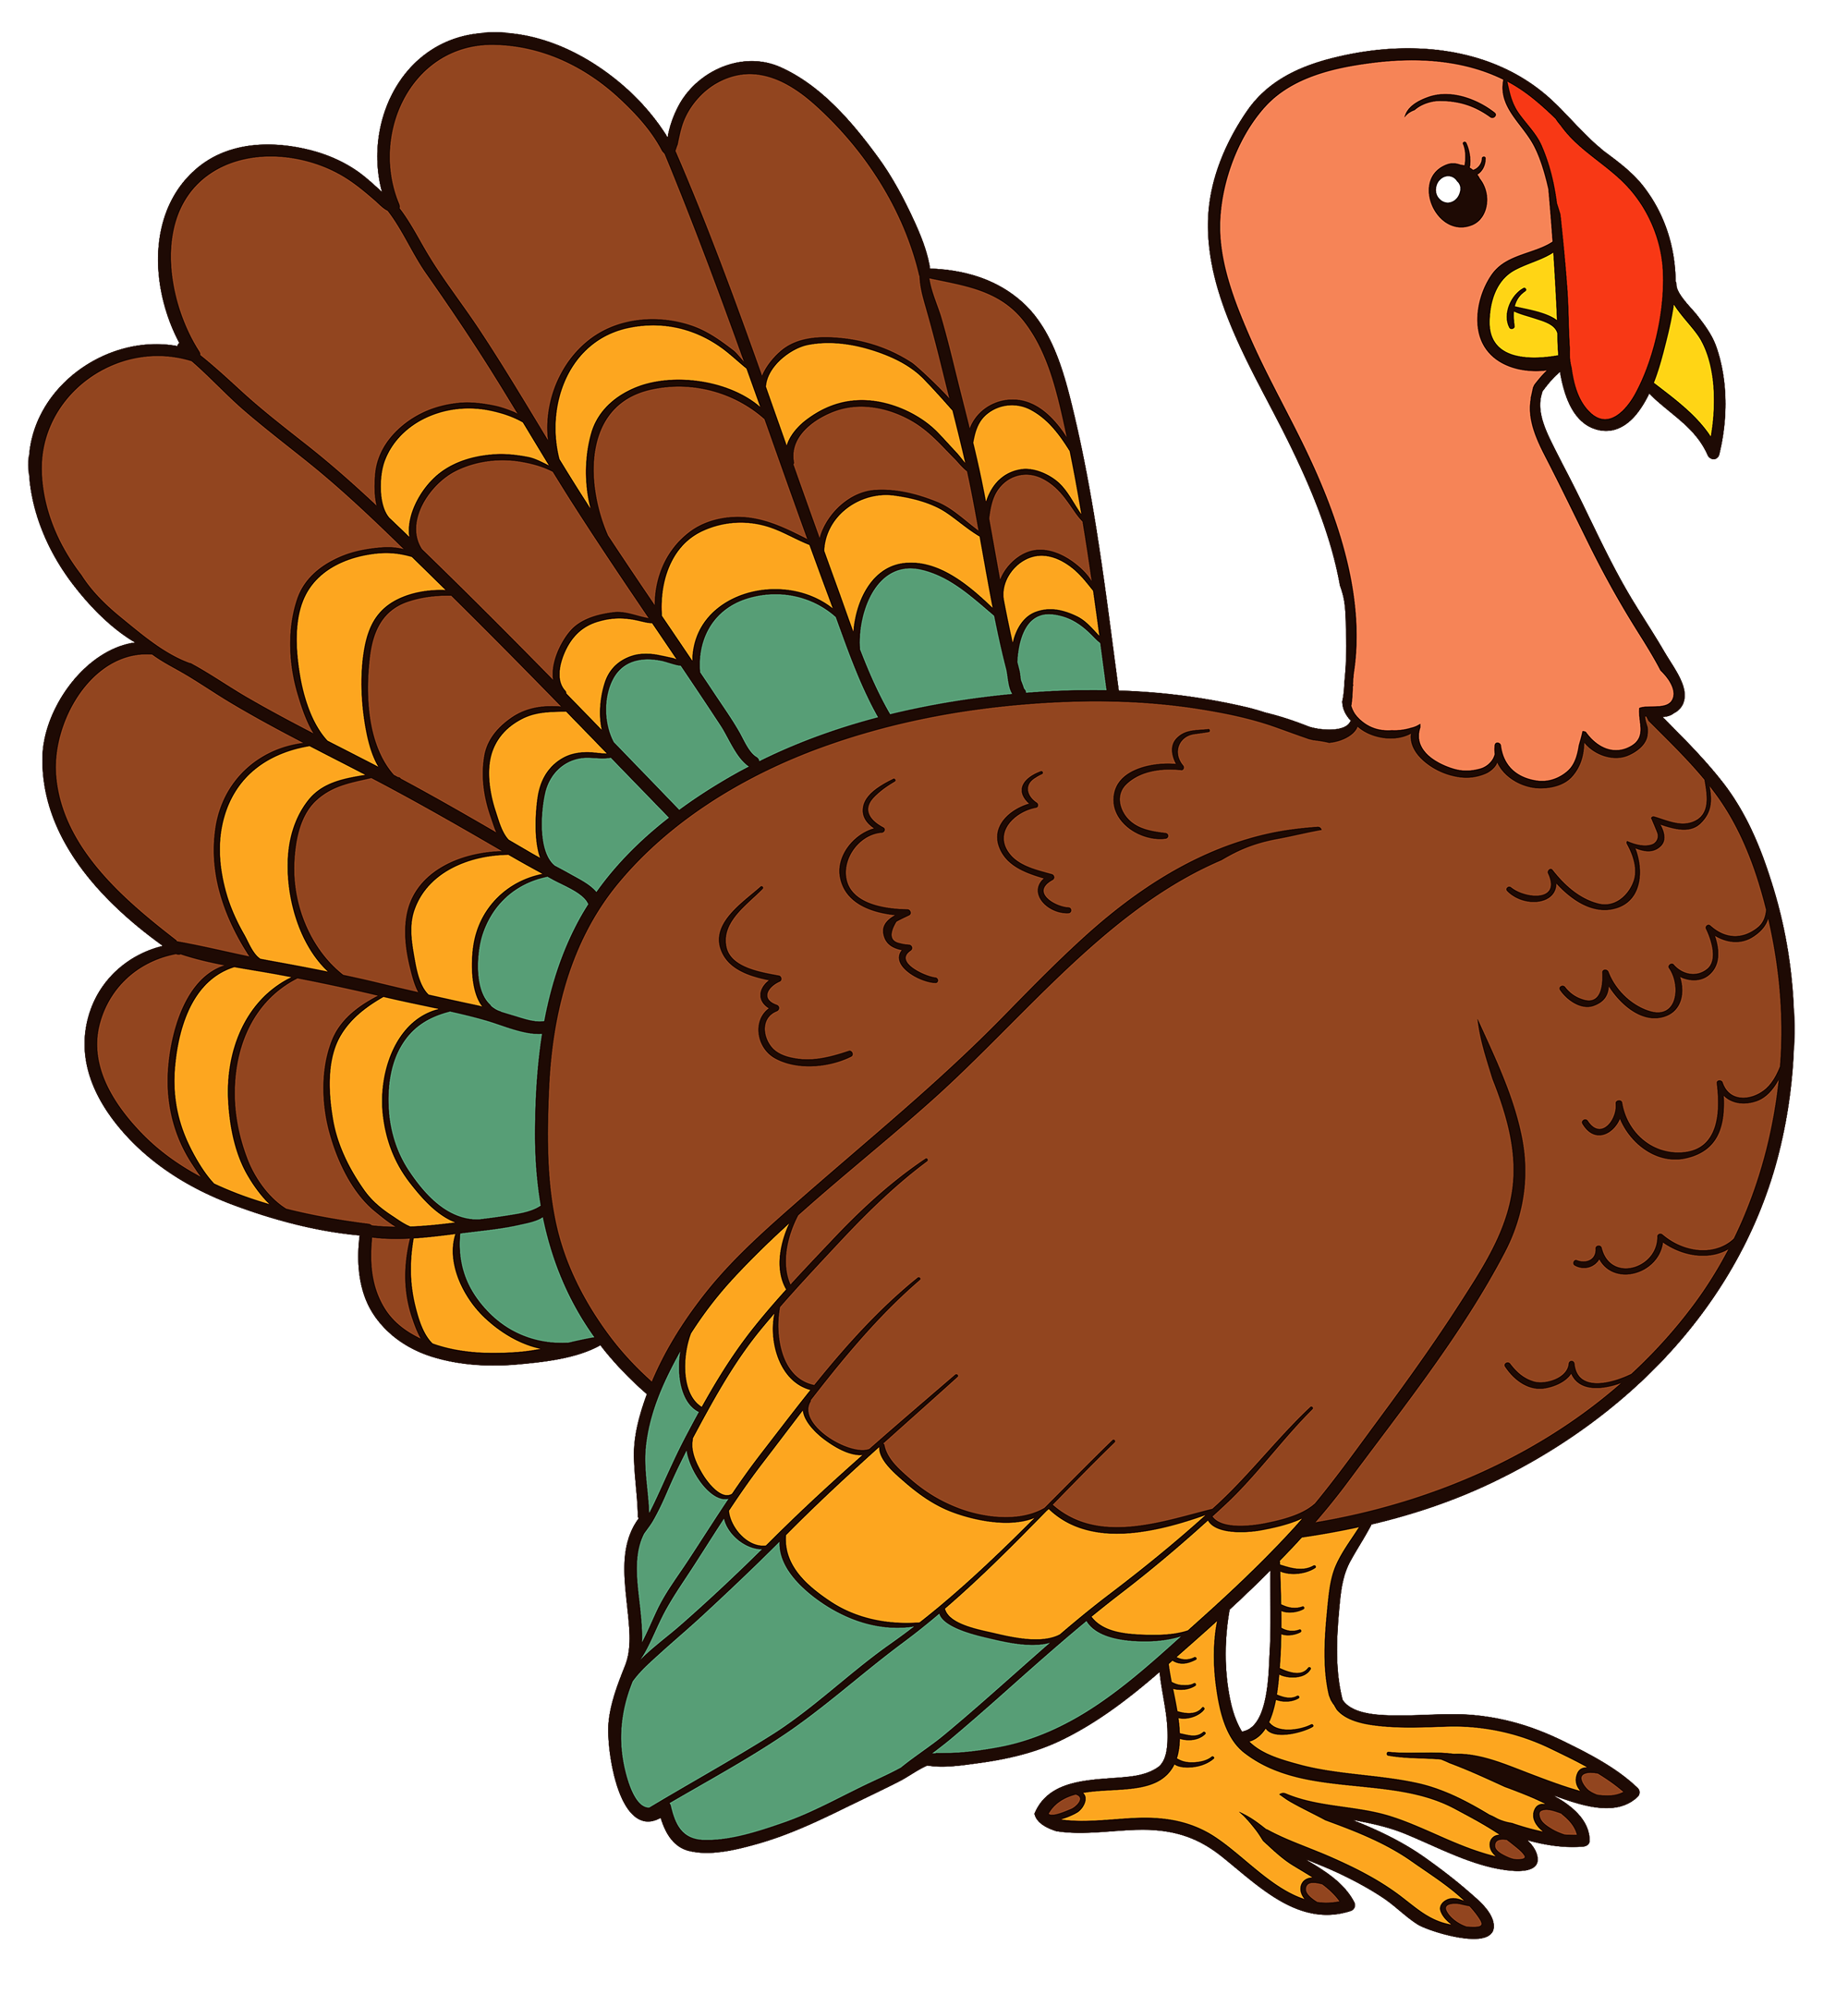 Cute turkey clipart face png library stock Turkey Clipart - Dr. Odd png library stock